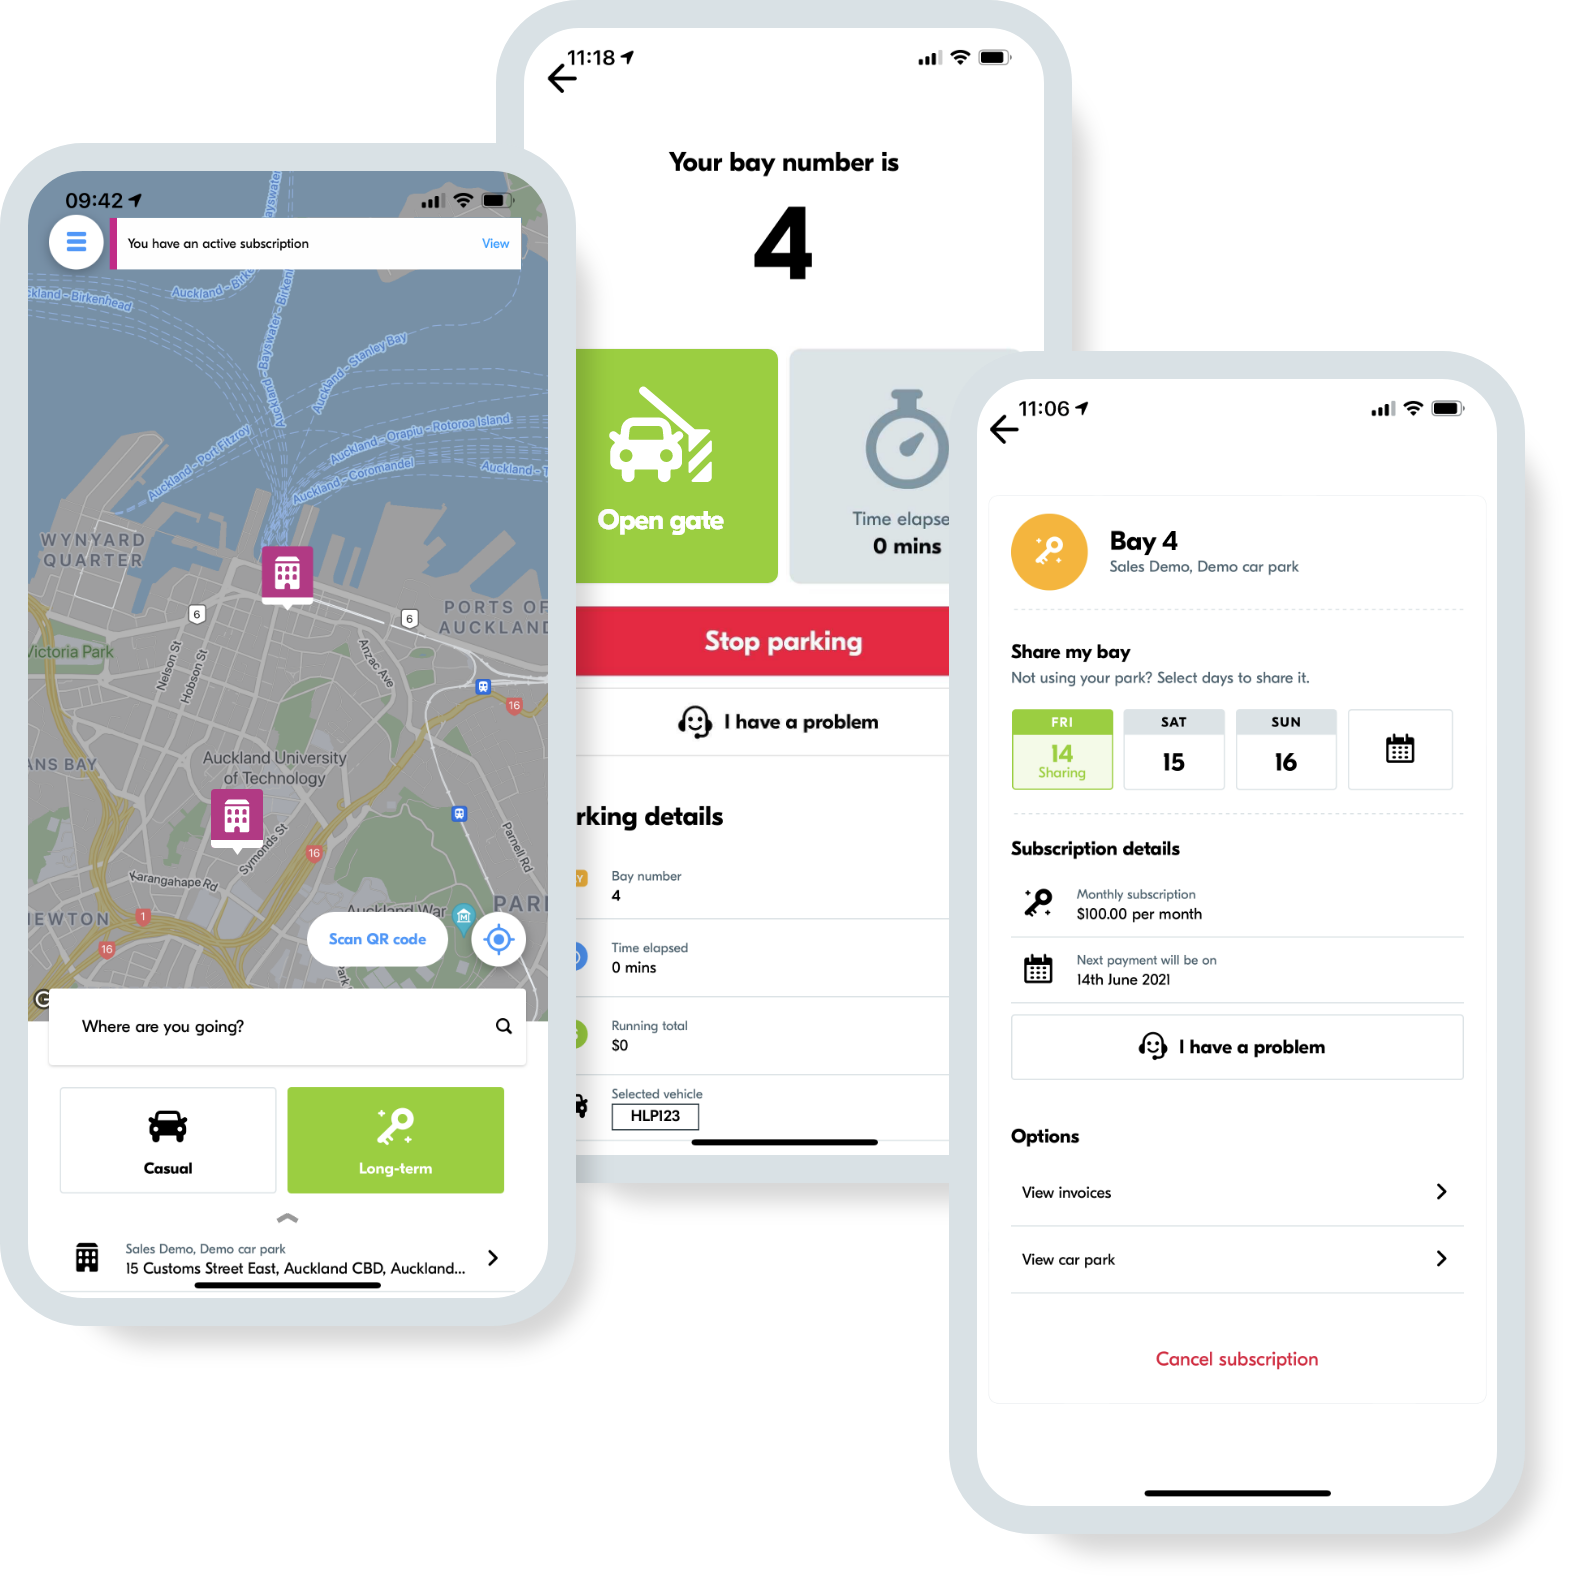 Staff and tenants can easily park, reserve a bay in advance, share their bay with colleagues, open access gates, and start EV charging sessions using the app.